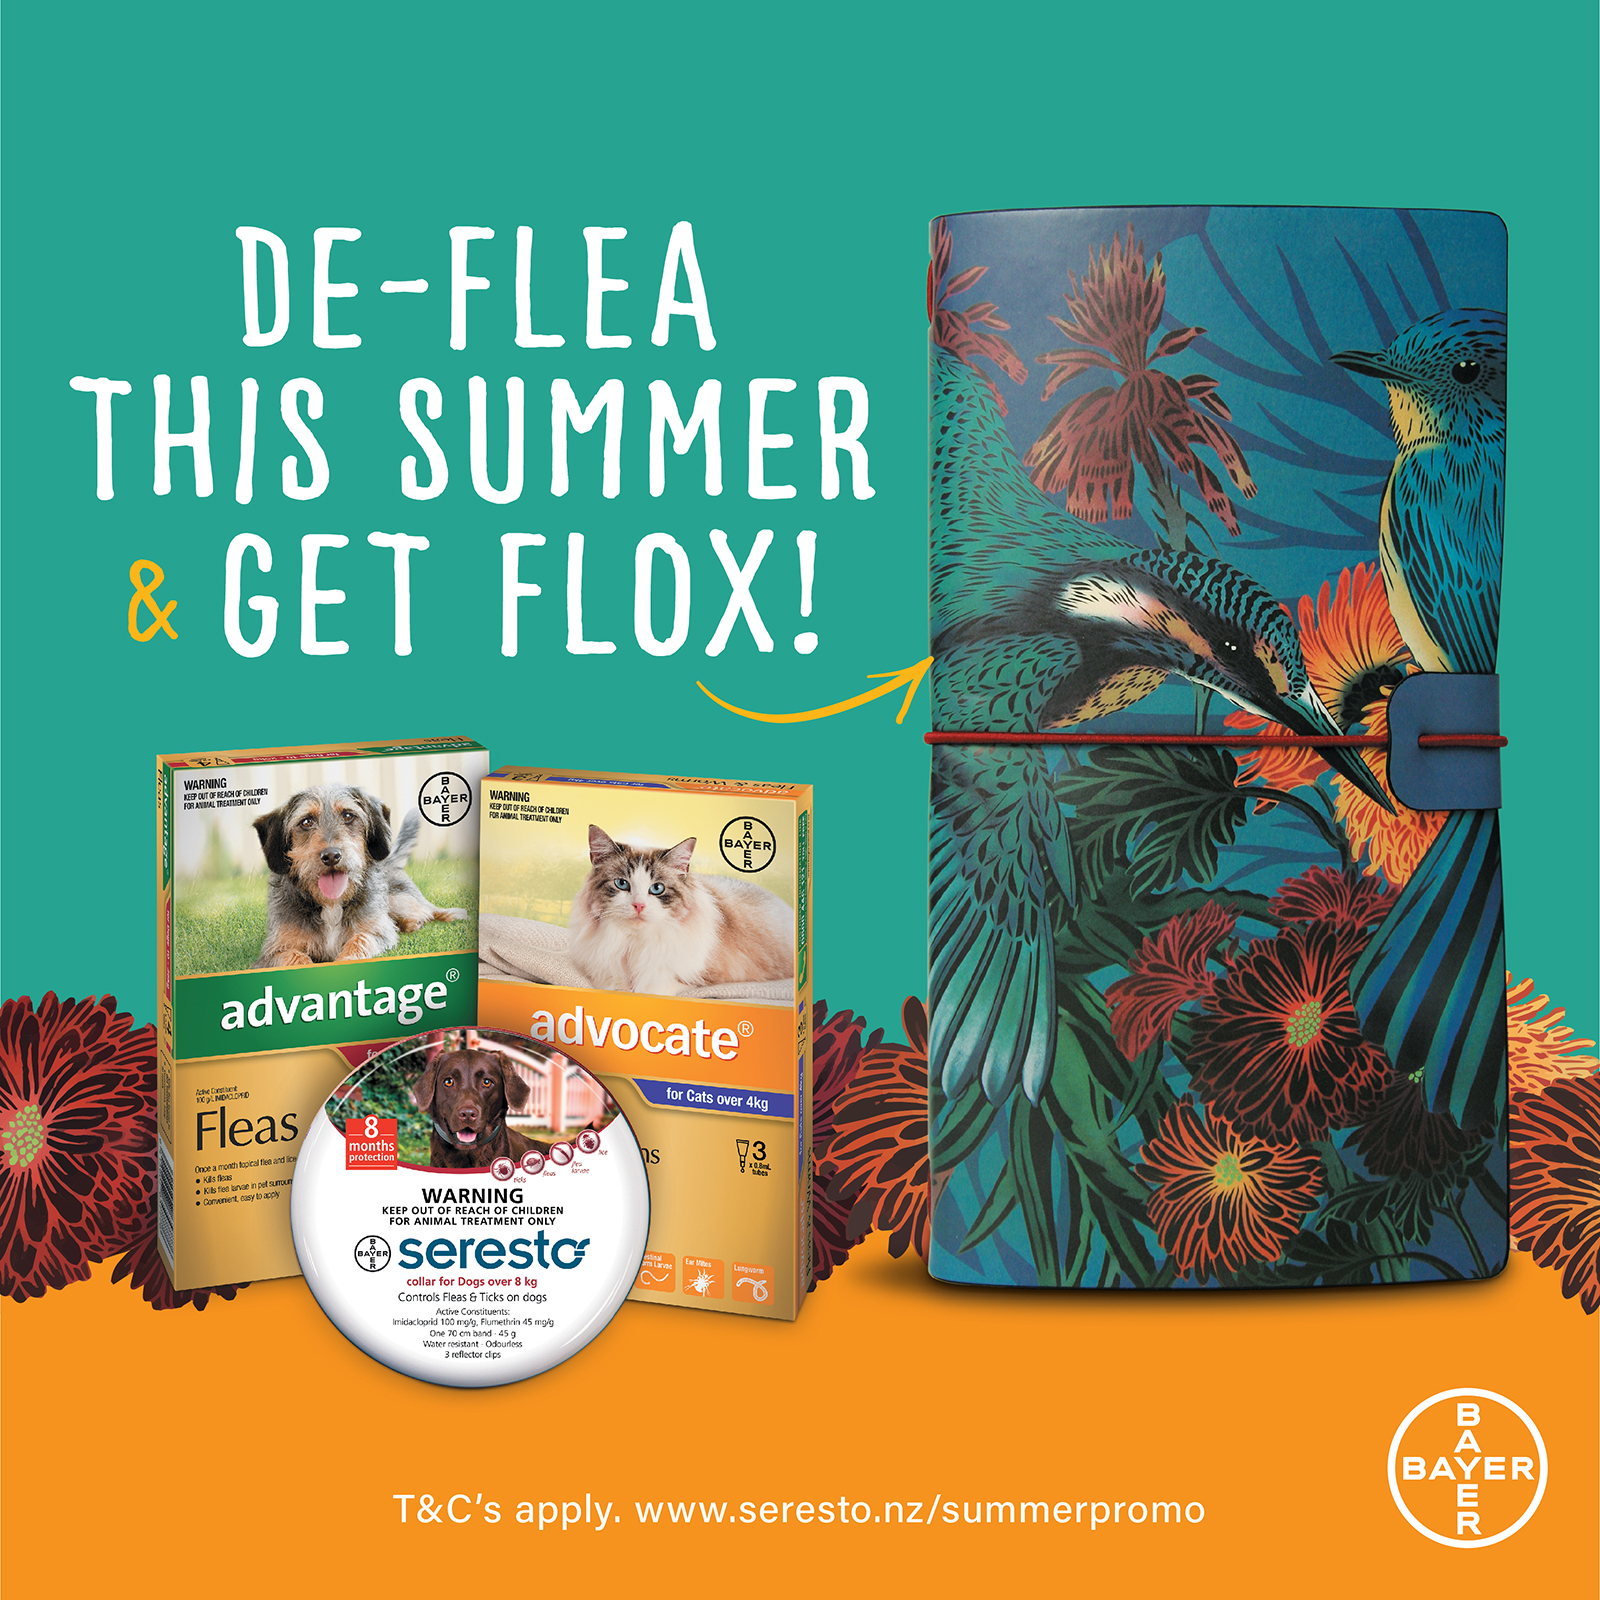 Free Flox Notebook When You Purchase Bayer Flea Products!